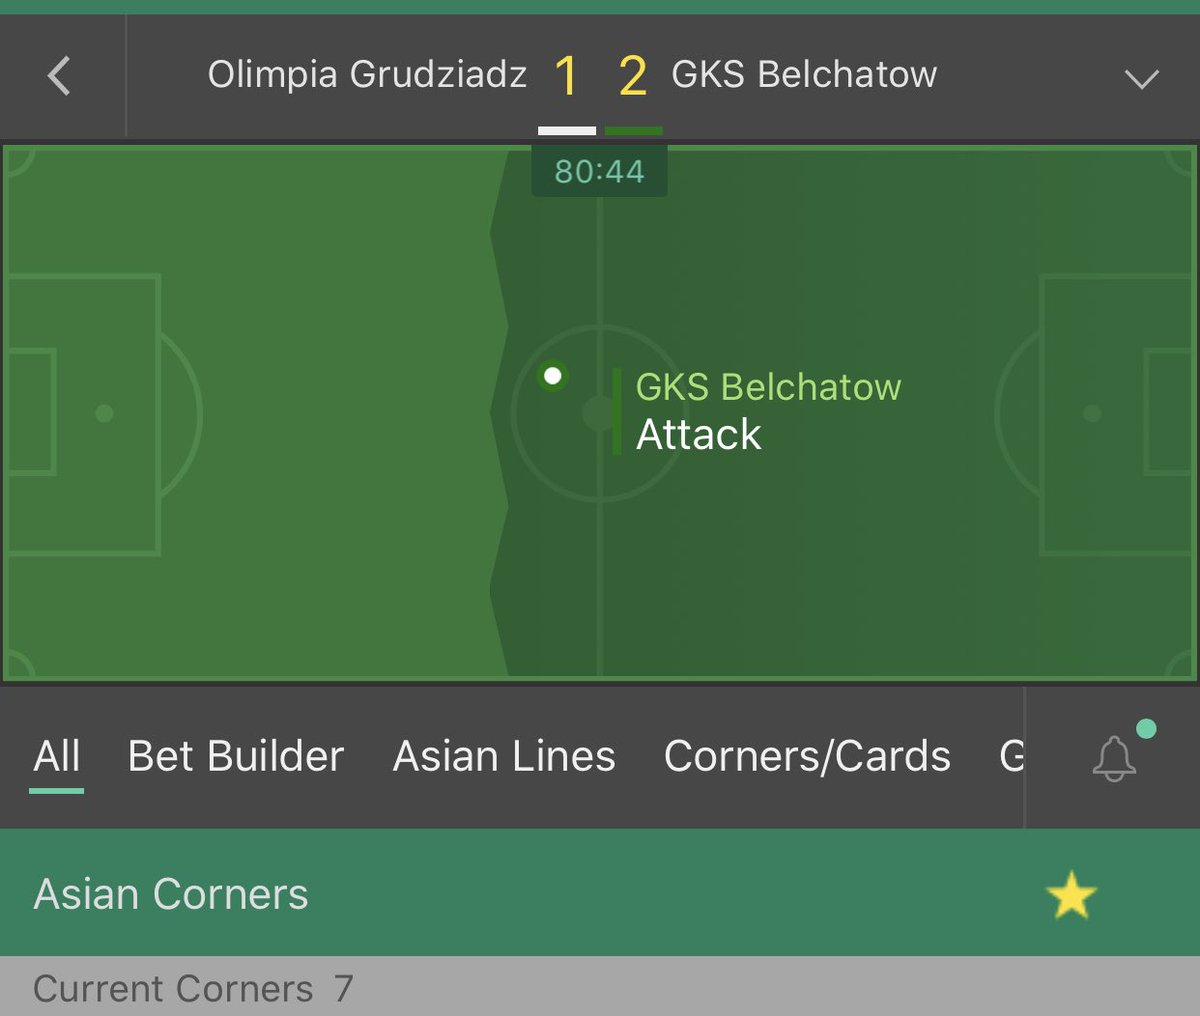 Poland     Over 8 asian corners (1.9 odds min)   Stake - 2 unit   #Inplay #Poland #Freepic.twitter.com/FlURYqhN0k